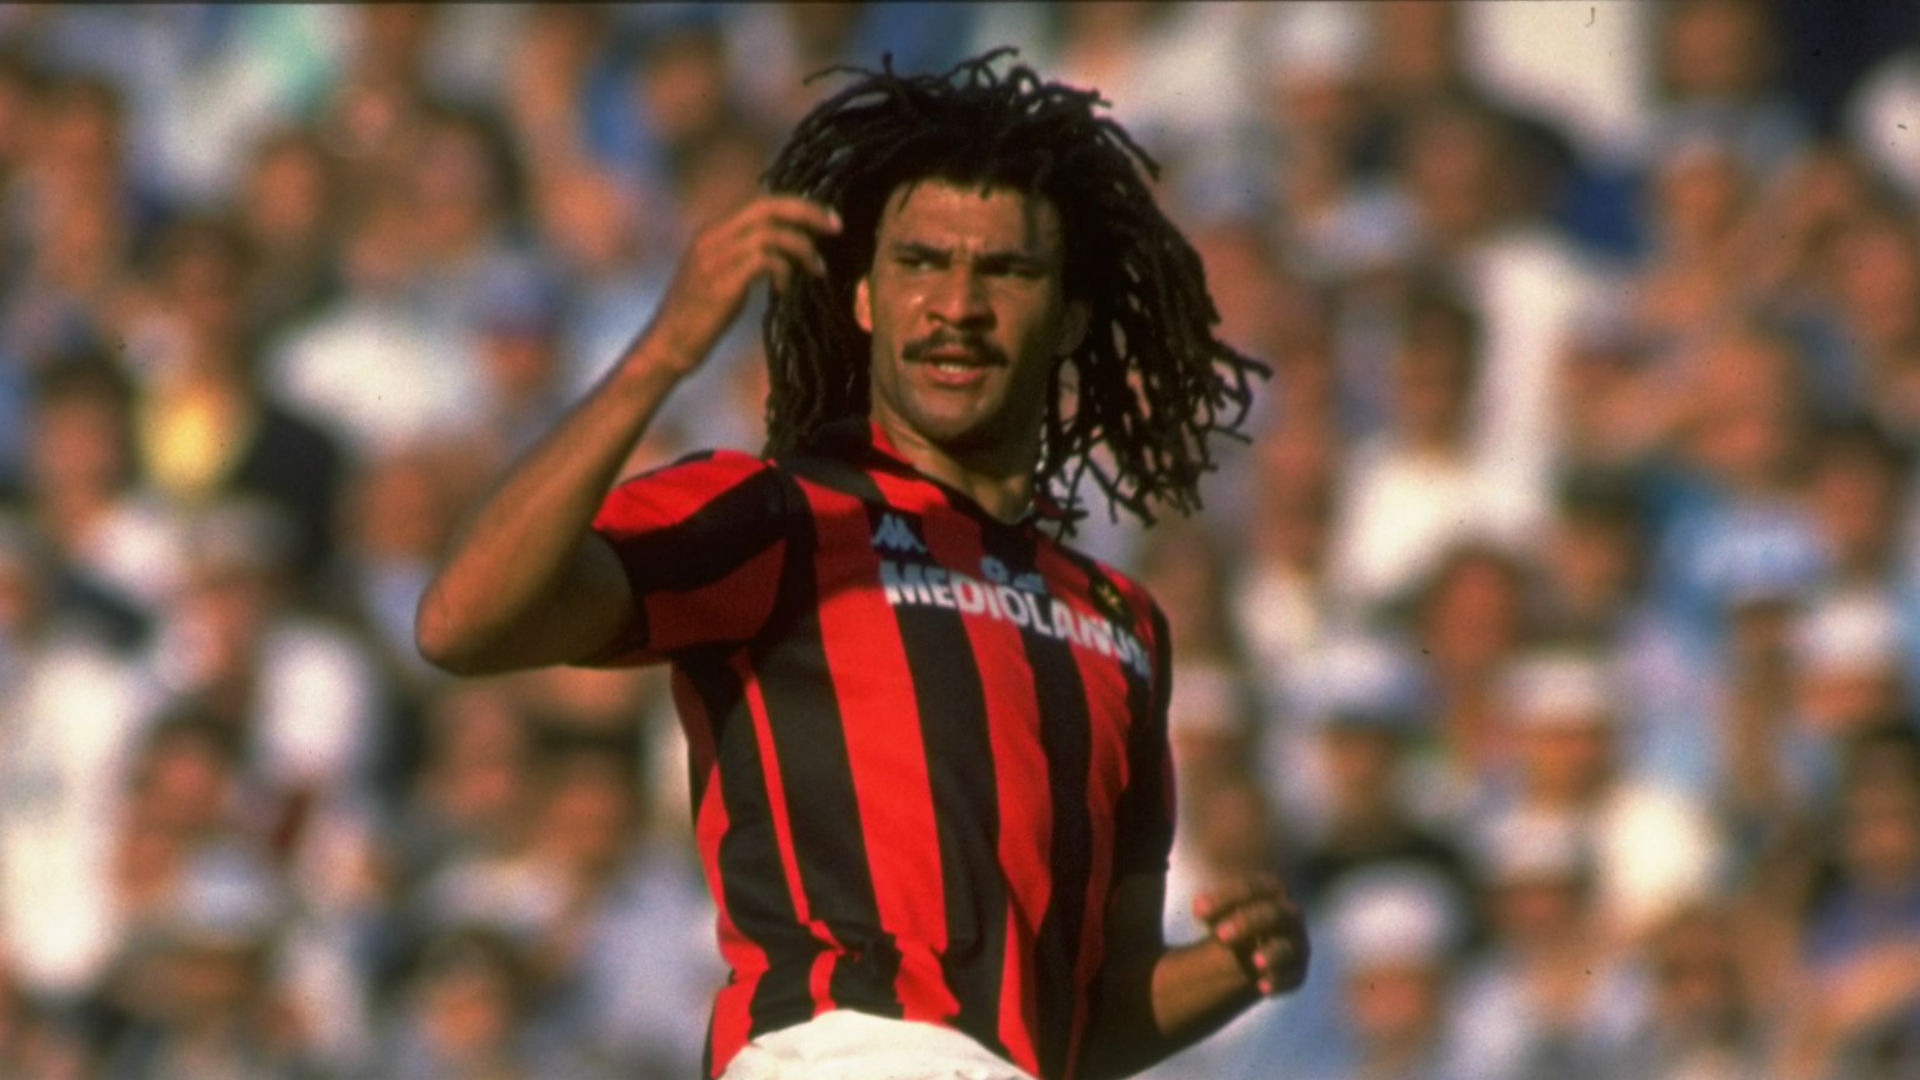 On this day in sport: The most fouls in an NBA game, Gullit joins Milan